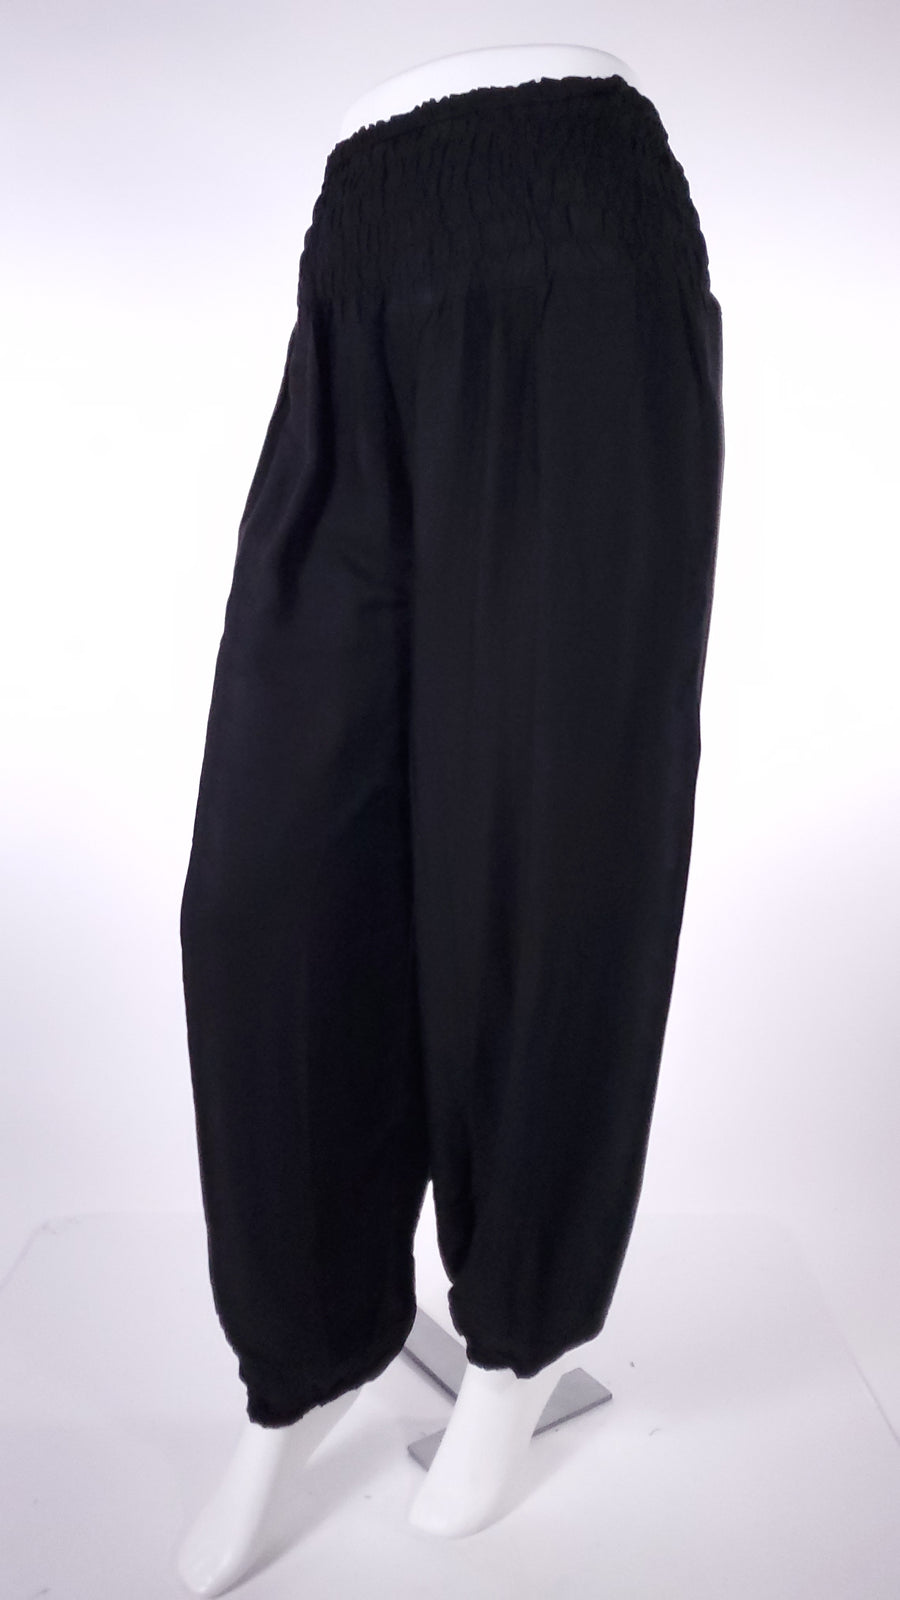 Straight Leg Harem Pants In Solid Black-The High Thai-The High Thai-Yoga Pants-Harem Pants-Hippie Clothing-San Diego